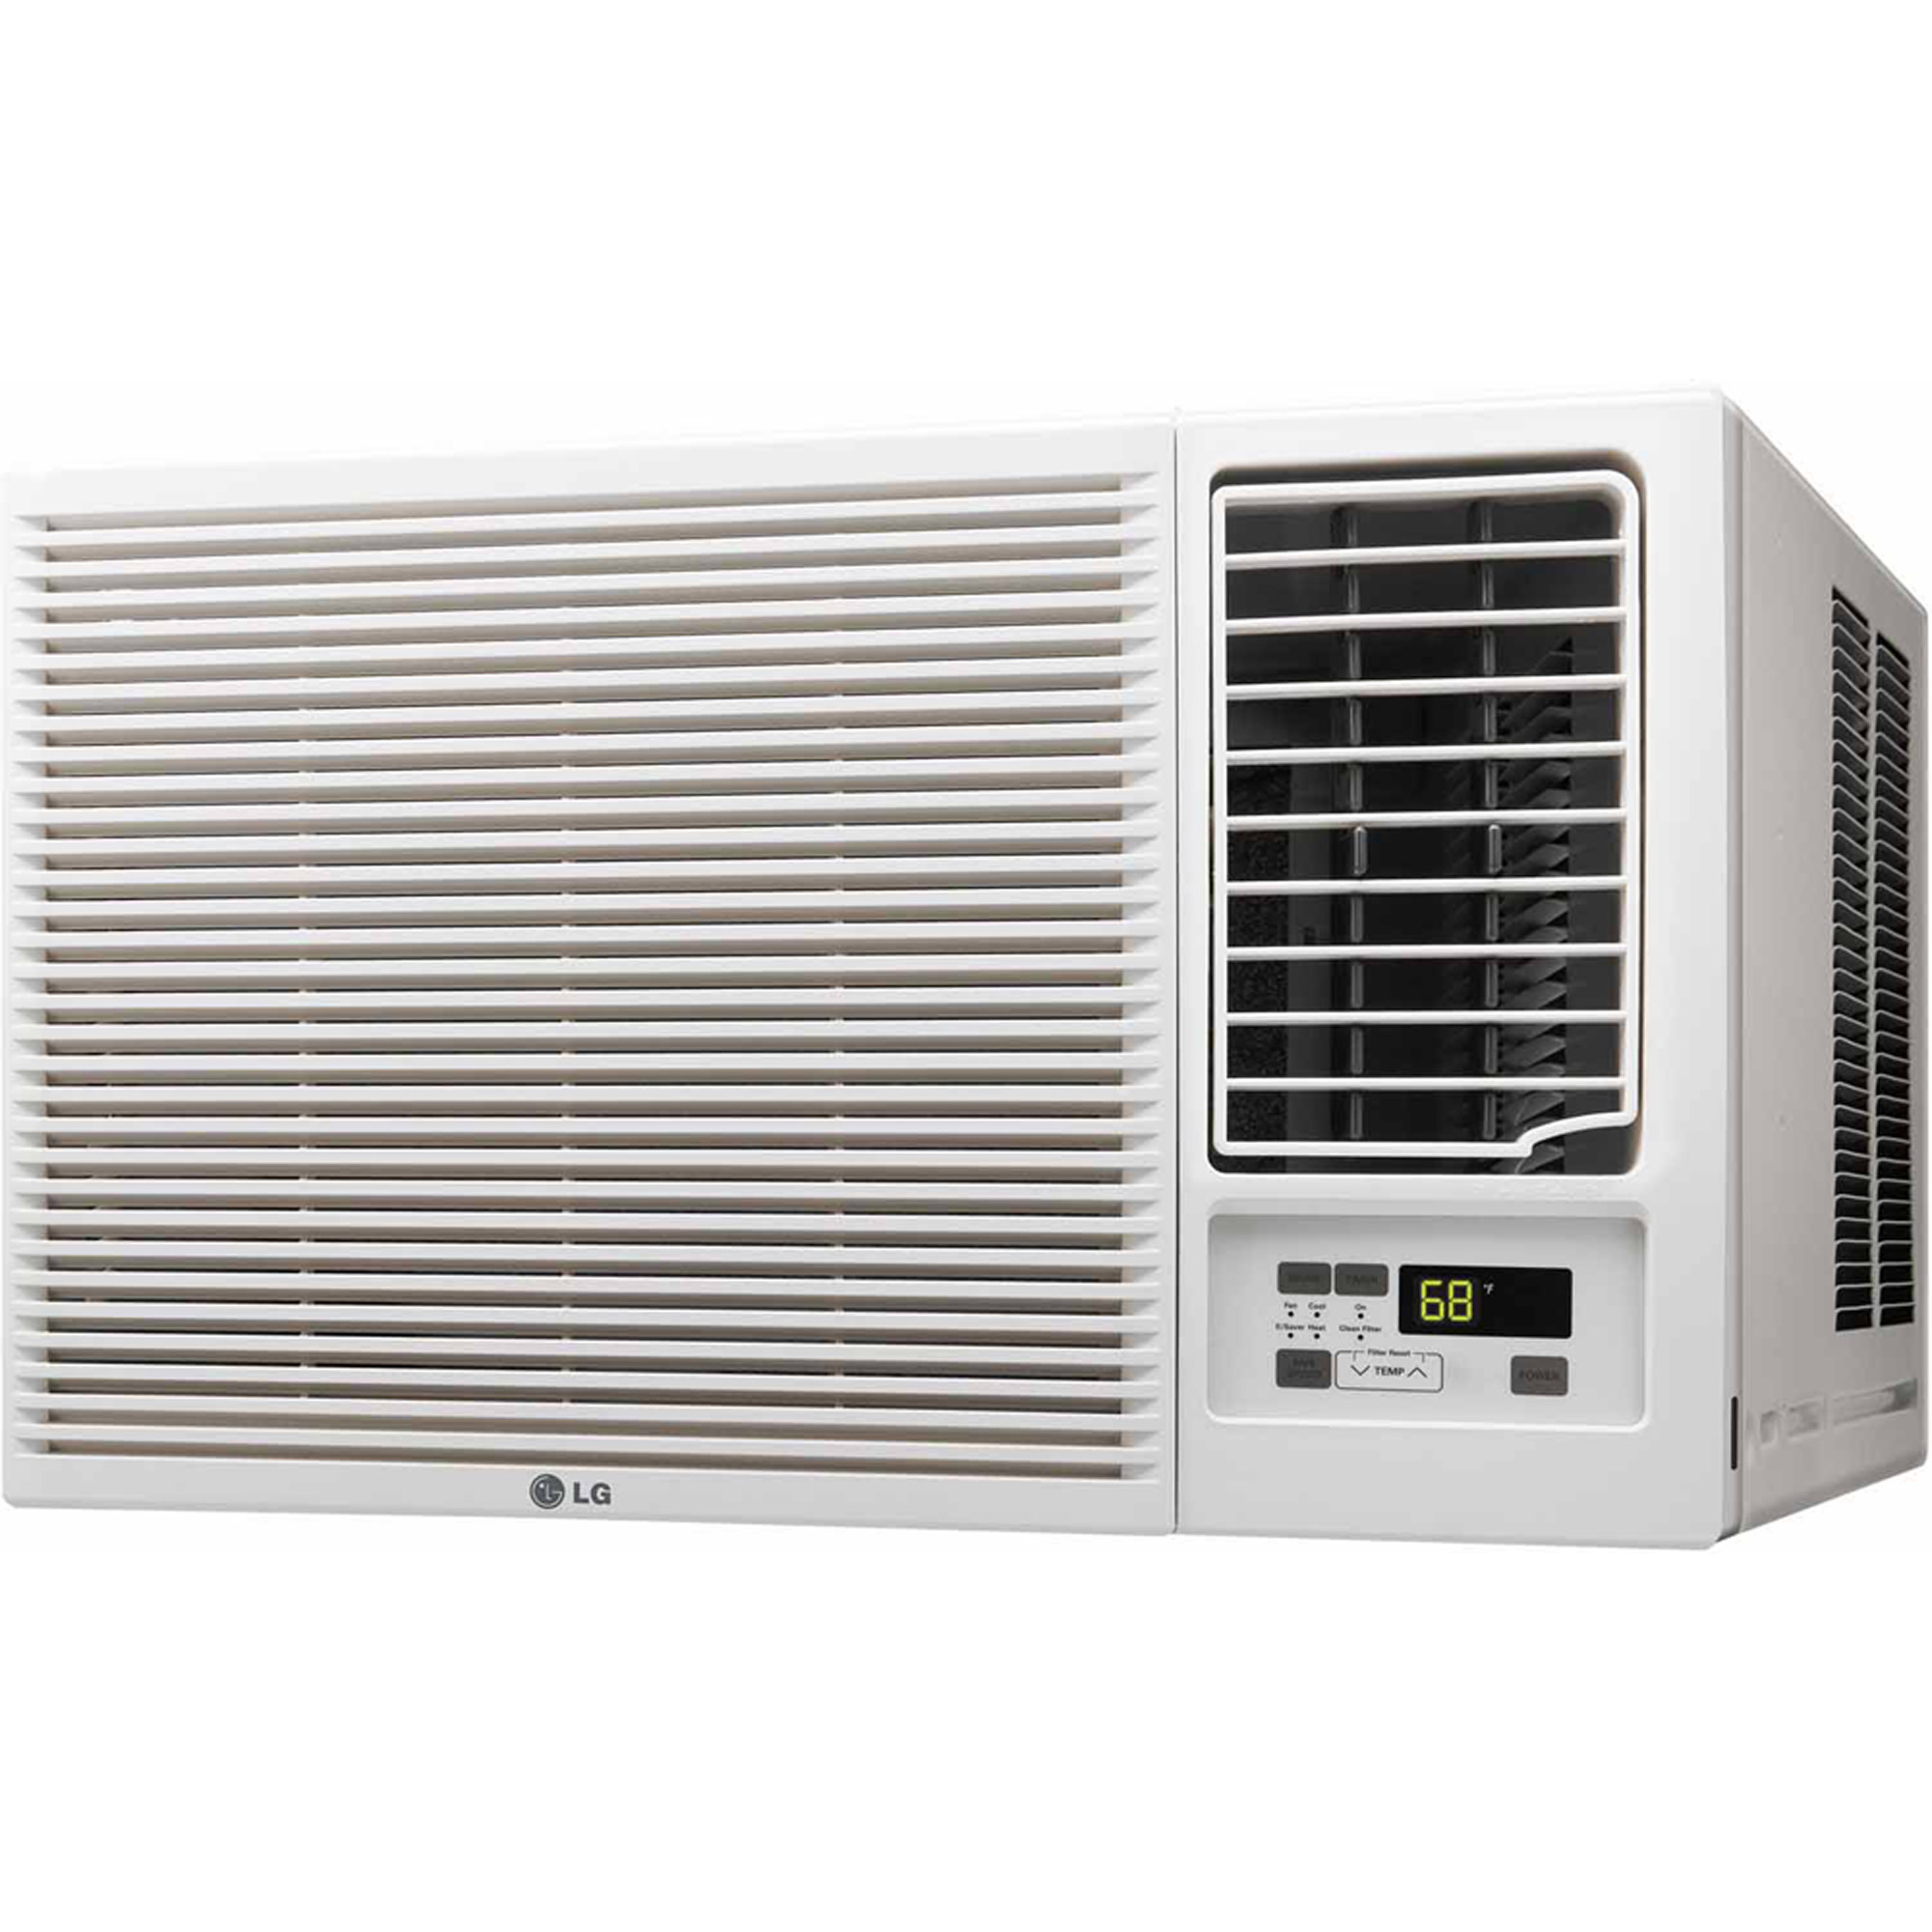 7500 btu 115v slide in out chassis air conditioner with 3850 btu 7500 btu 115v slide in out chassis air conditioner with 3850 btu supplemental heat function walmart jeuxipadfo Images